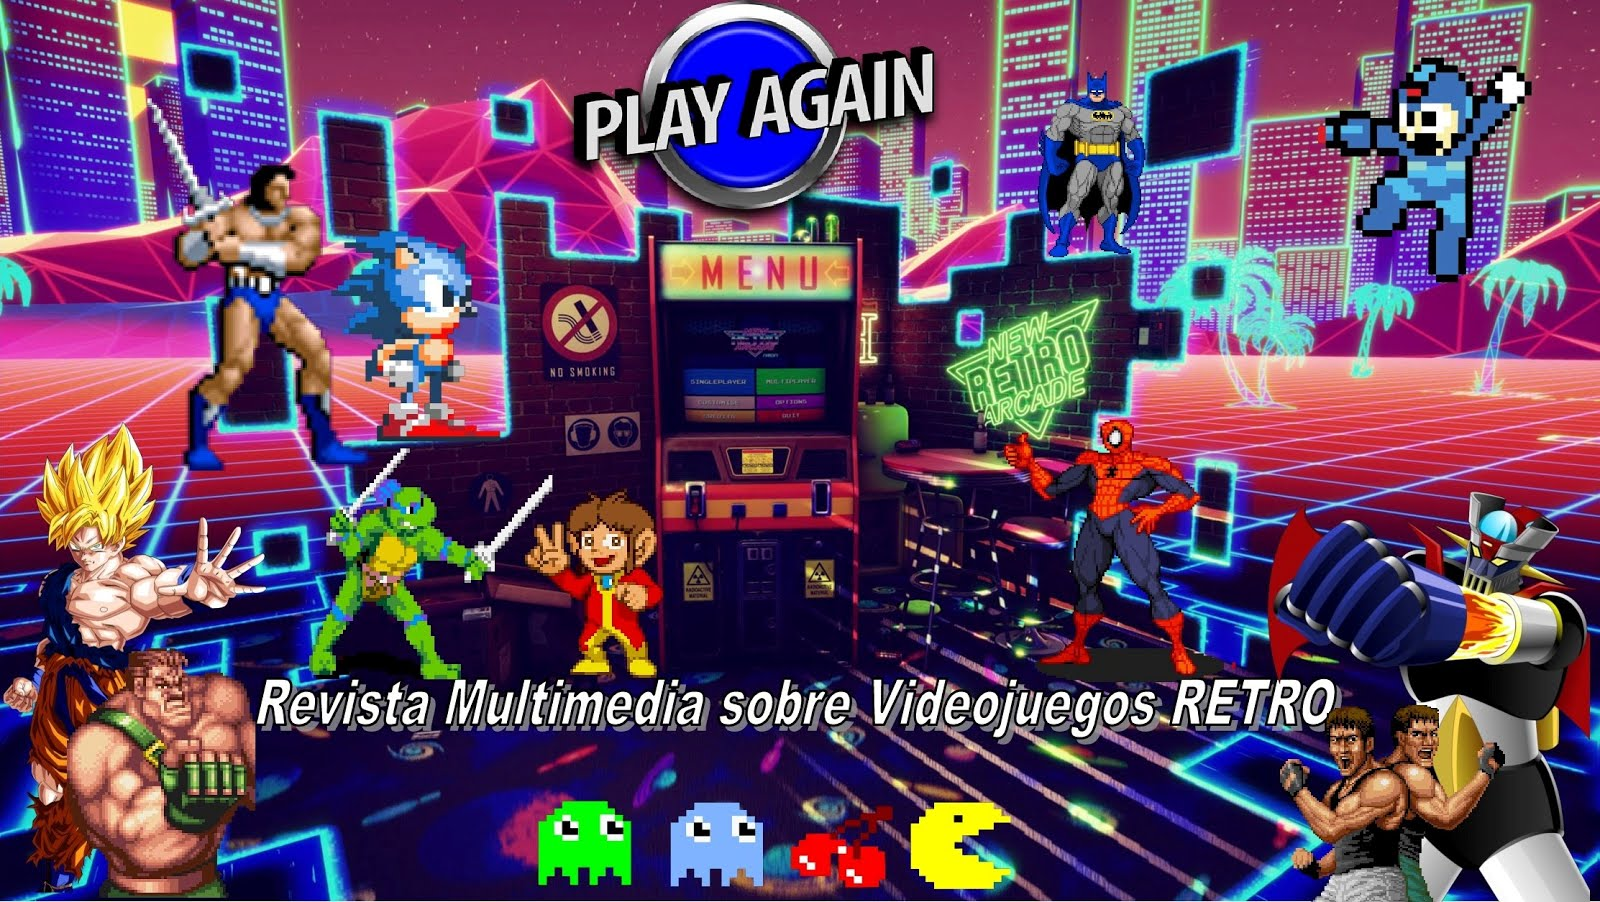 Revista Multimedia de Videojuegos RETRO